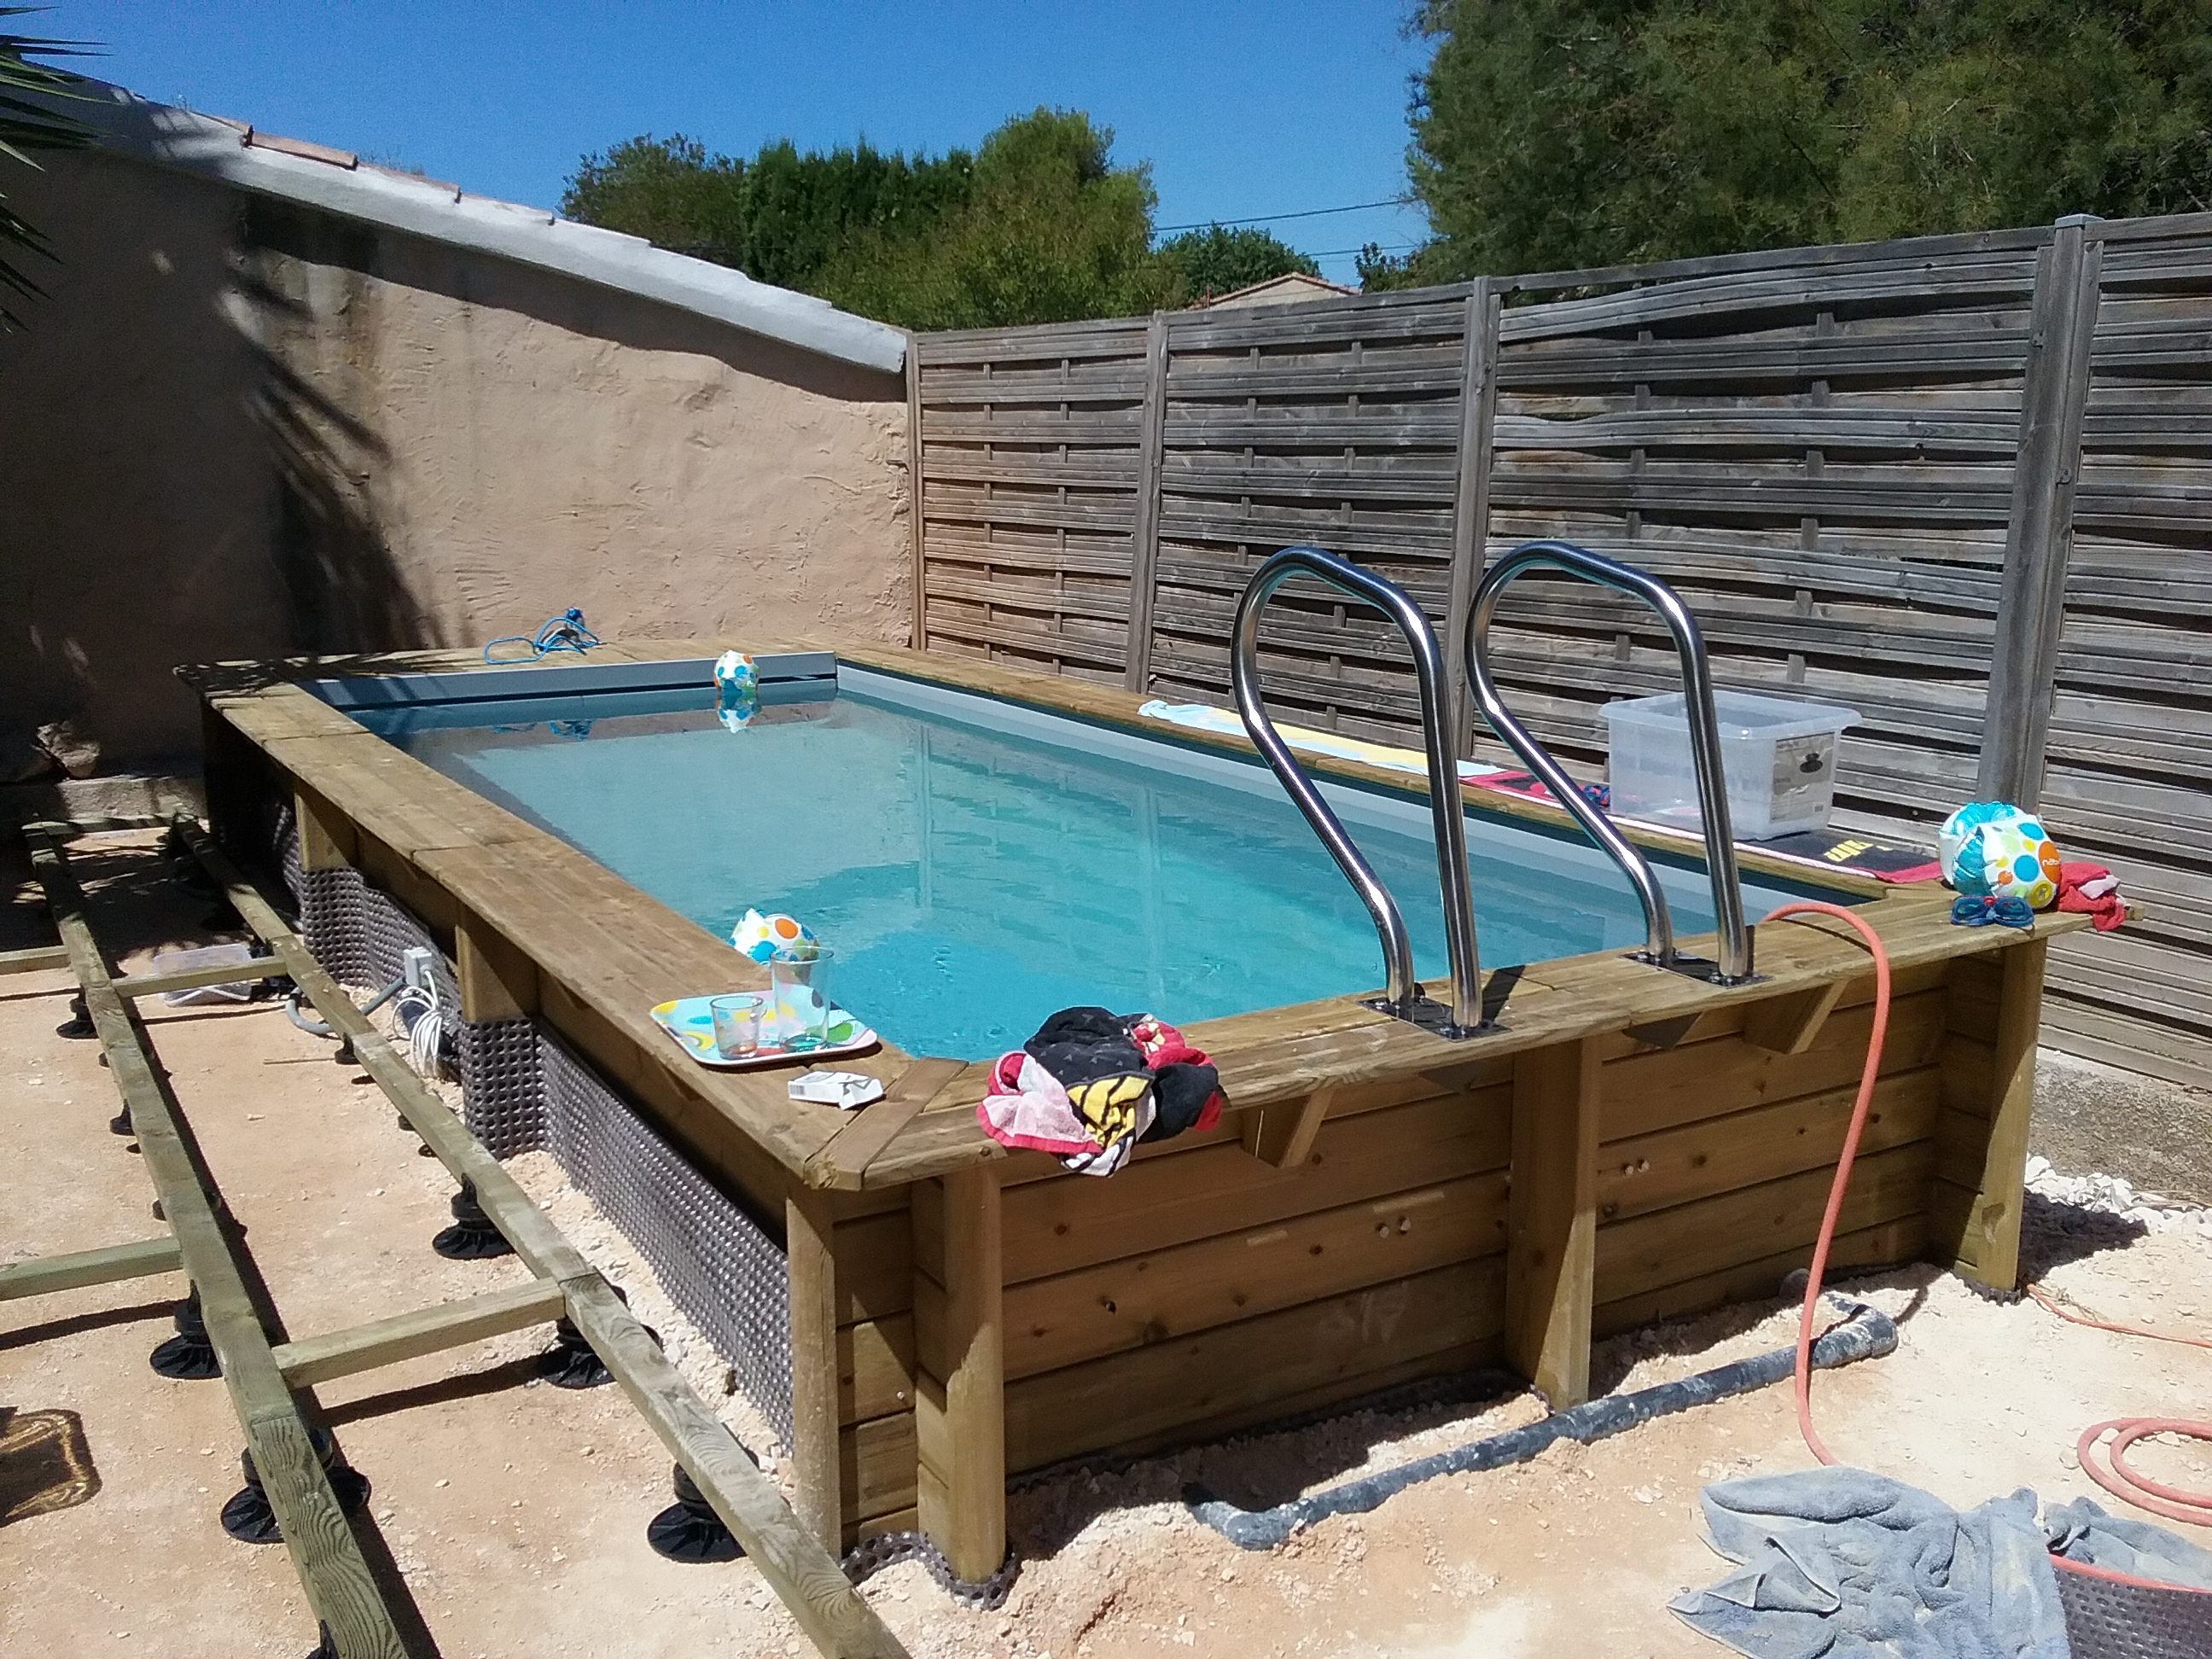 une petite piscine en bois construction de piscine toulon var. Black Bedroom Furniture Sets. Home Design Ideas